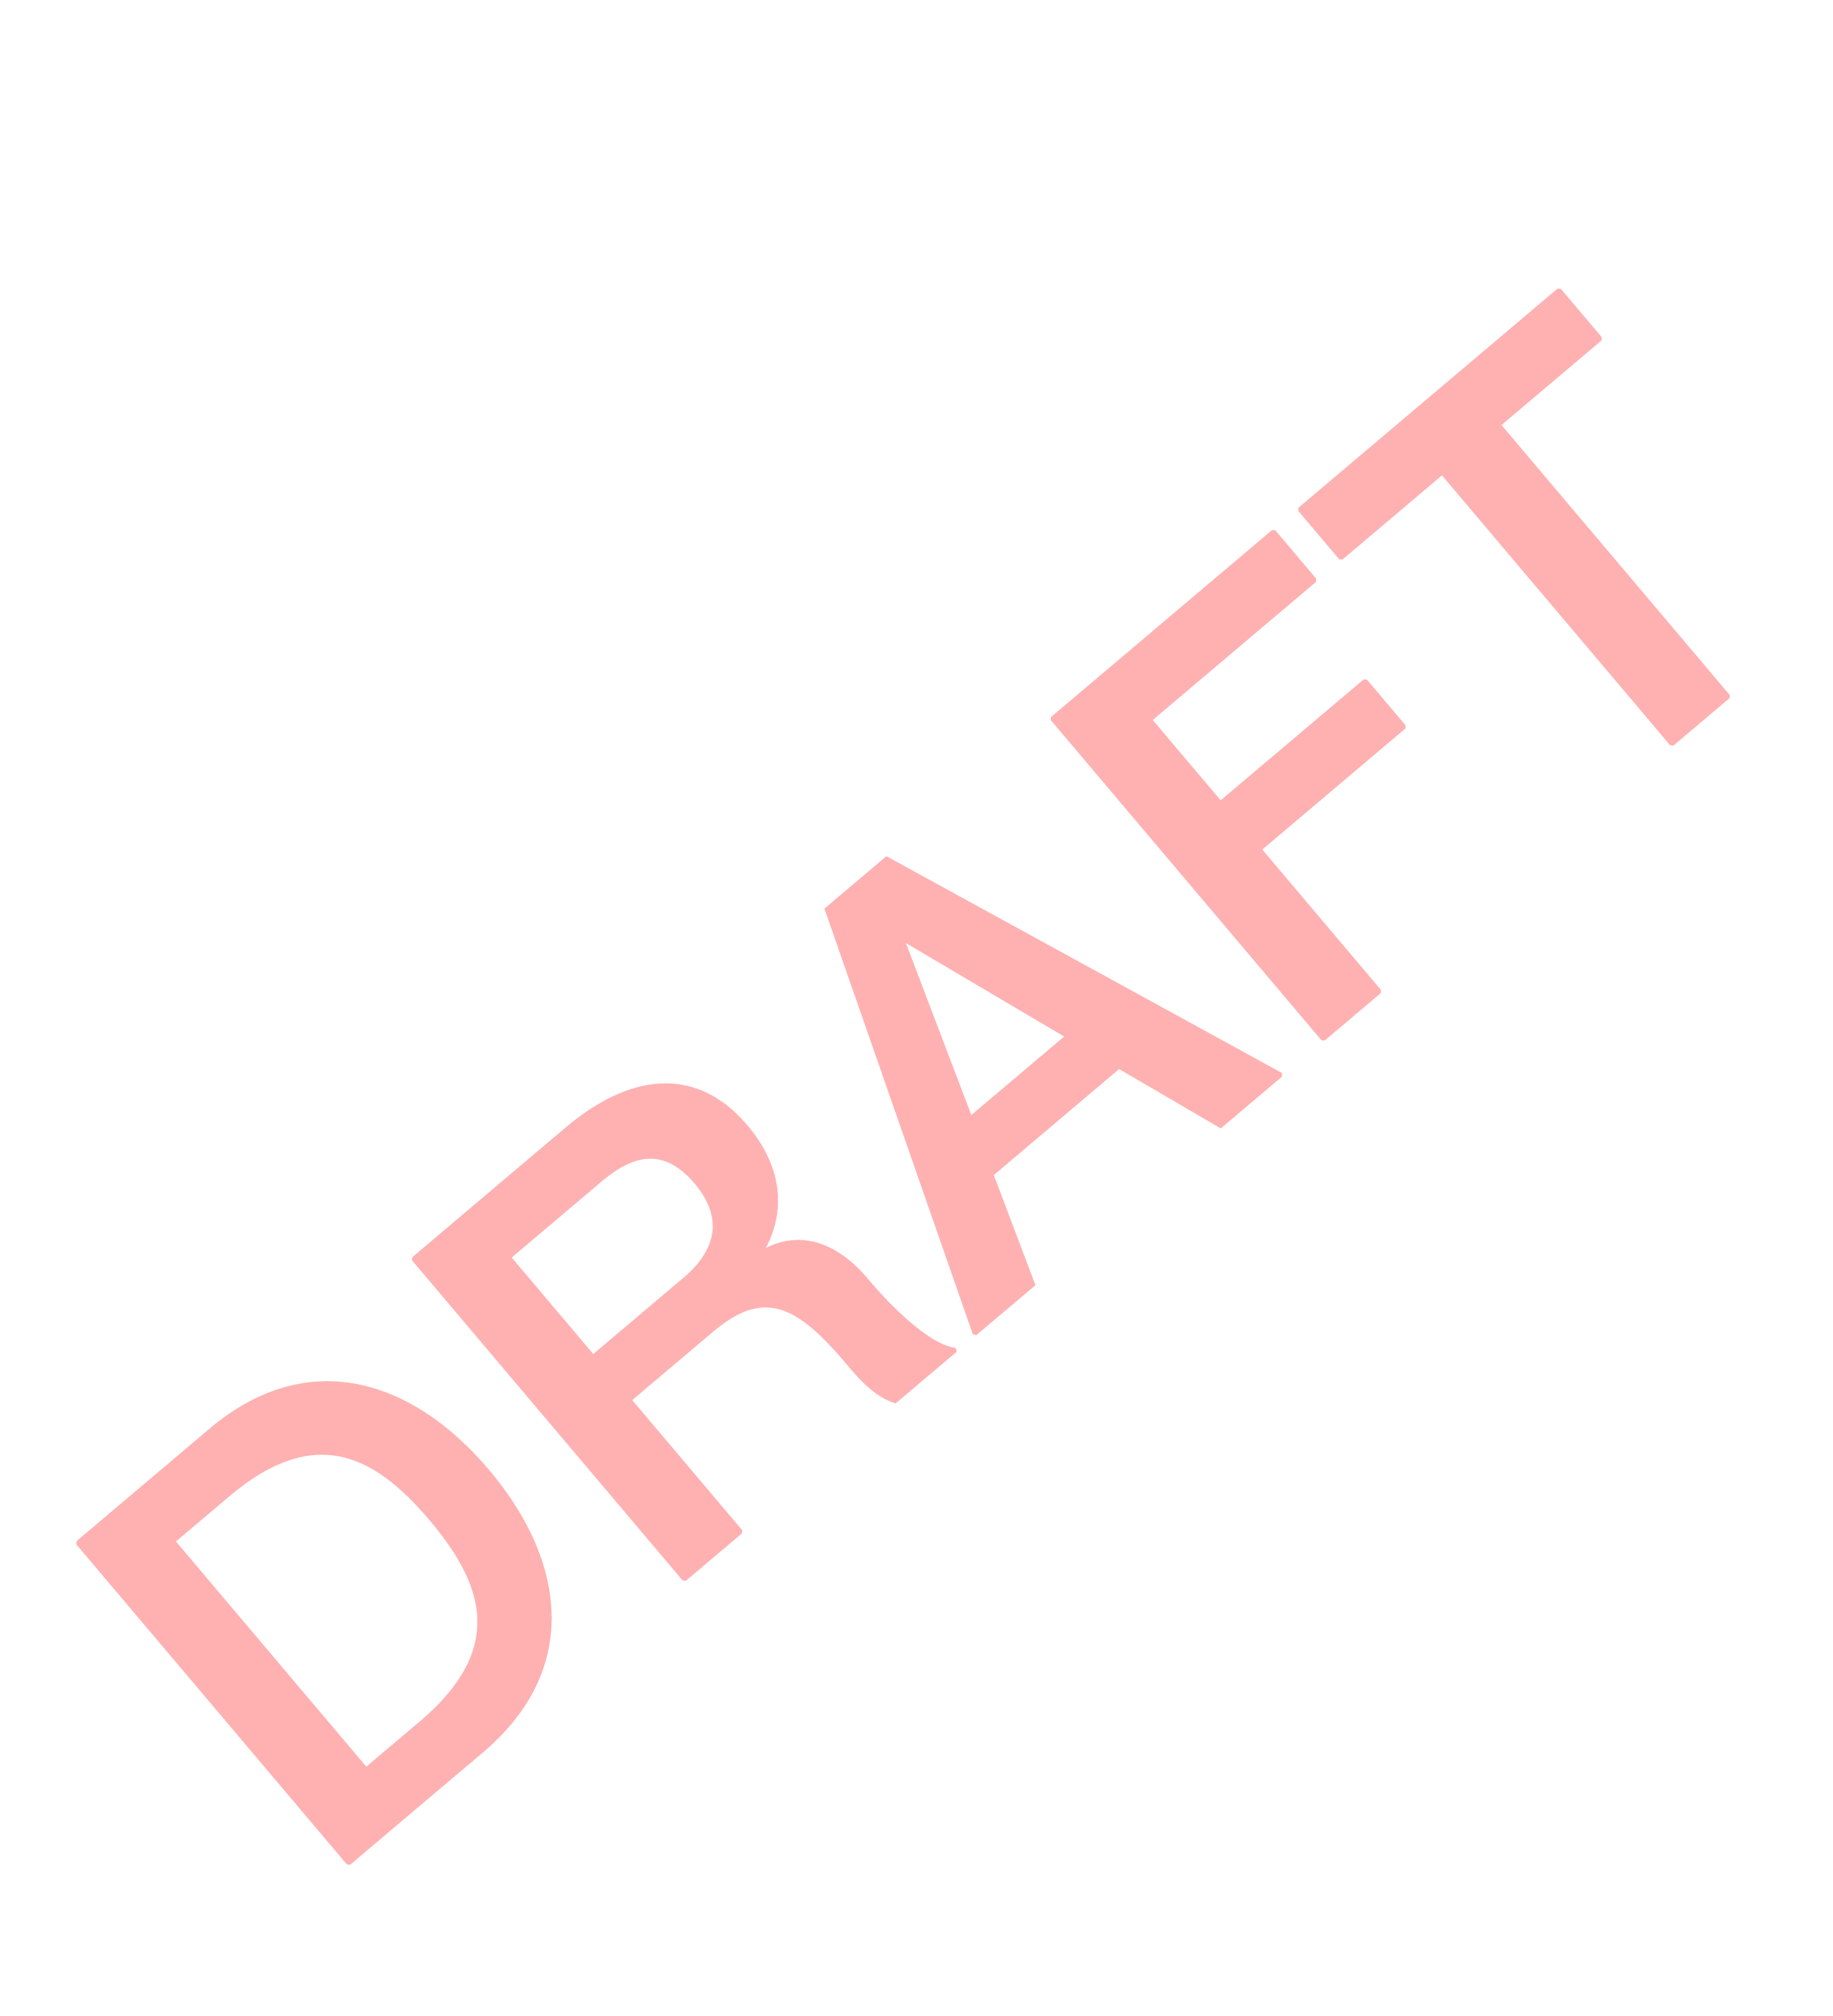 DRAFT marker: this page contains draft information.